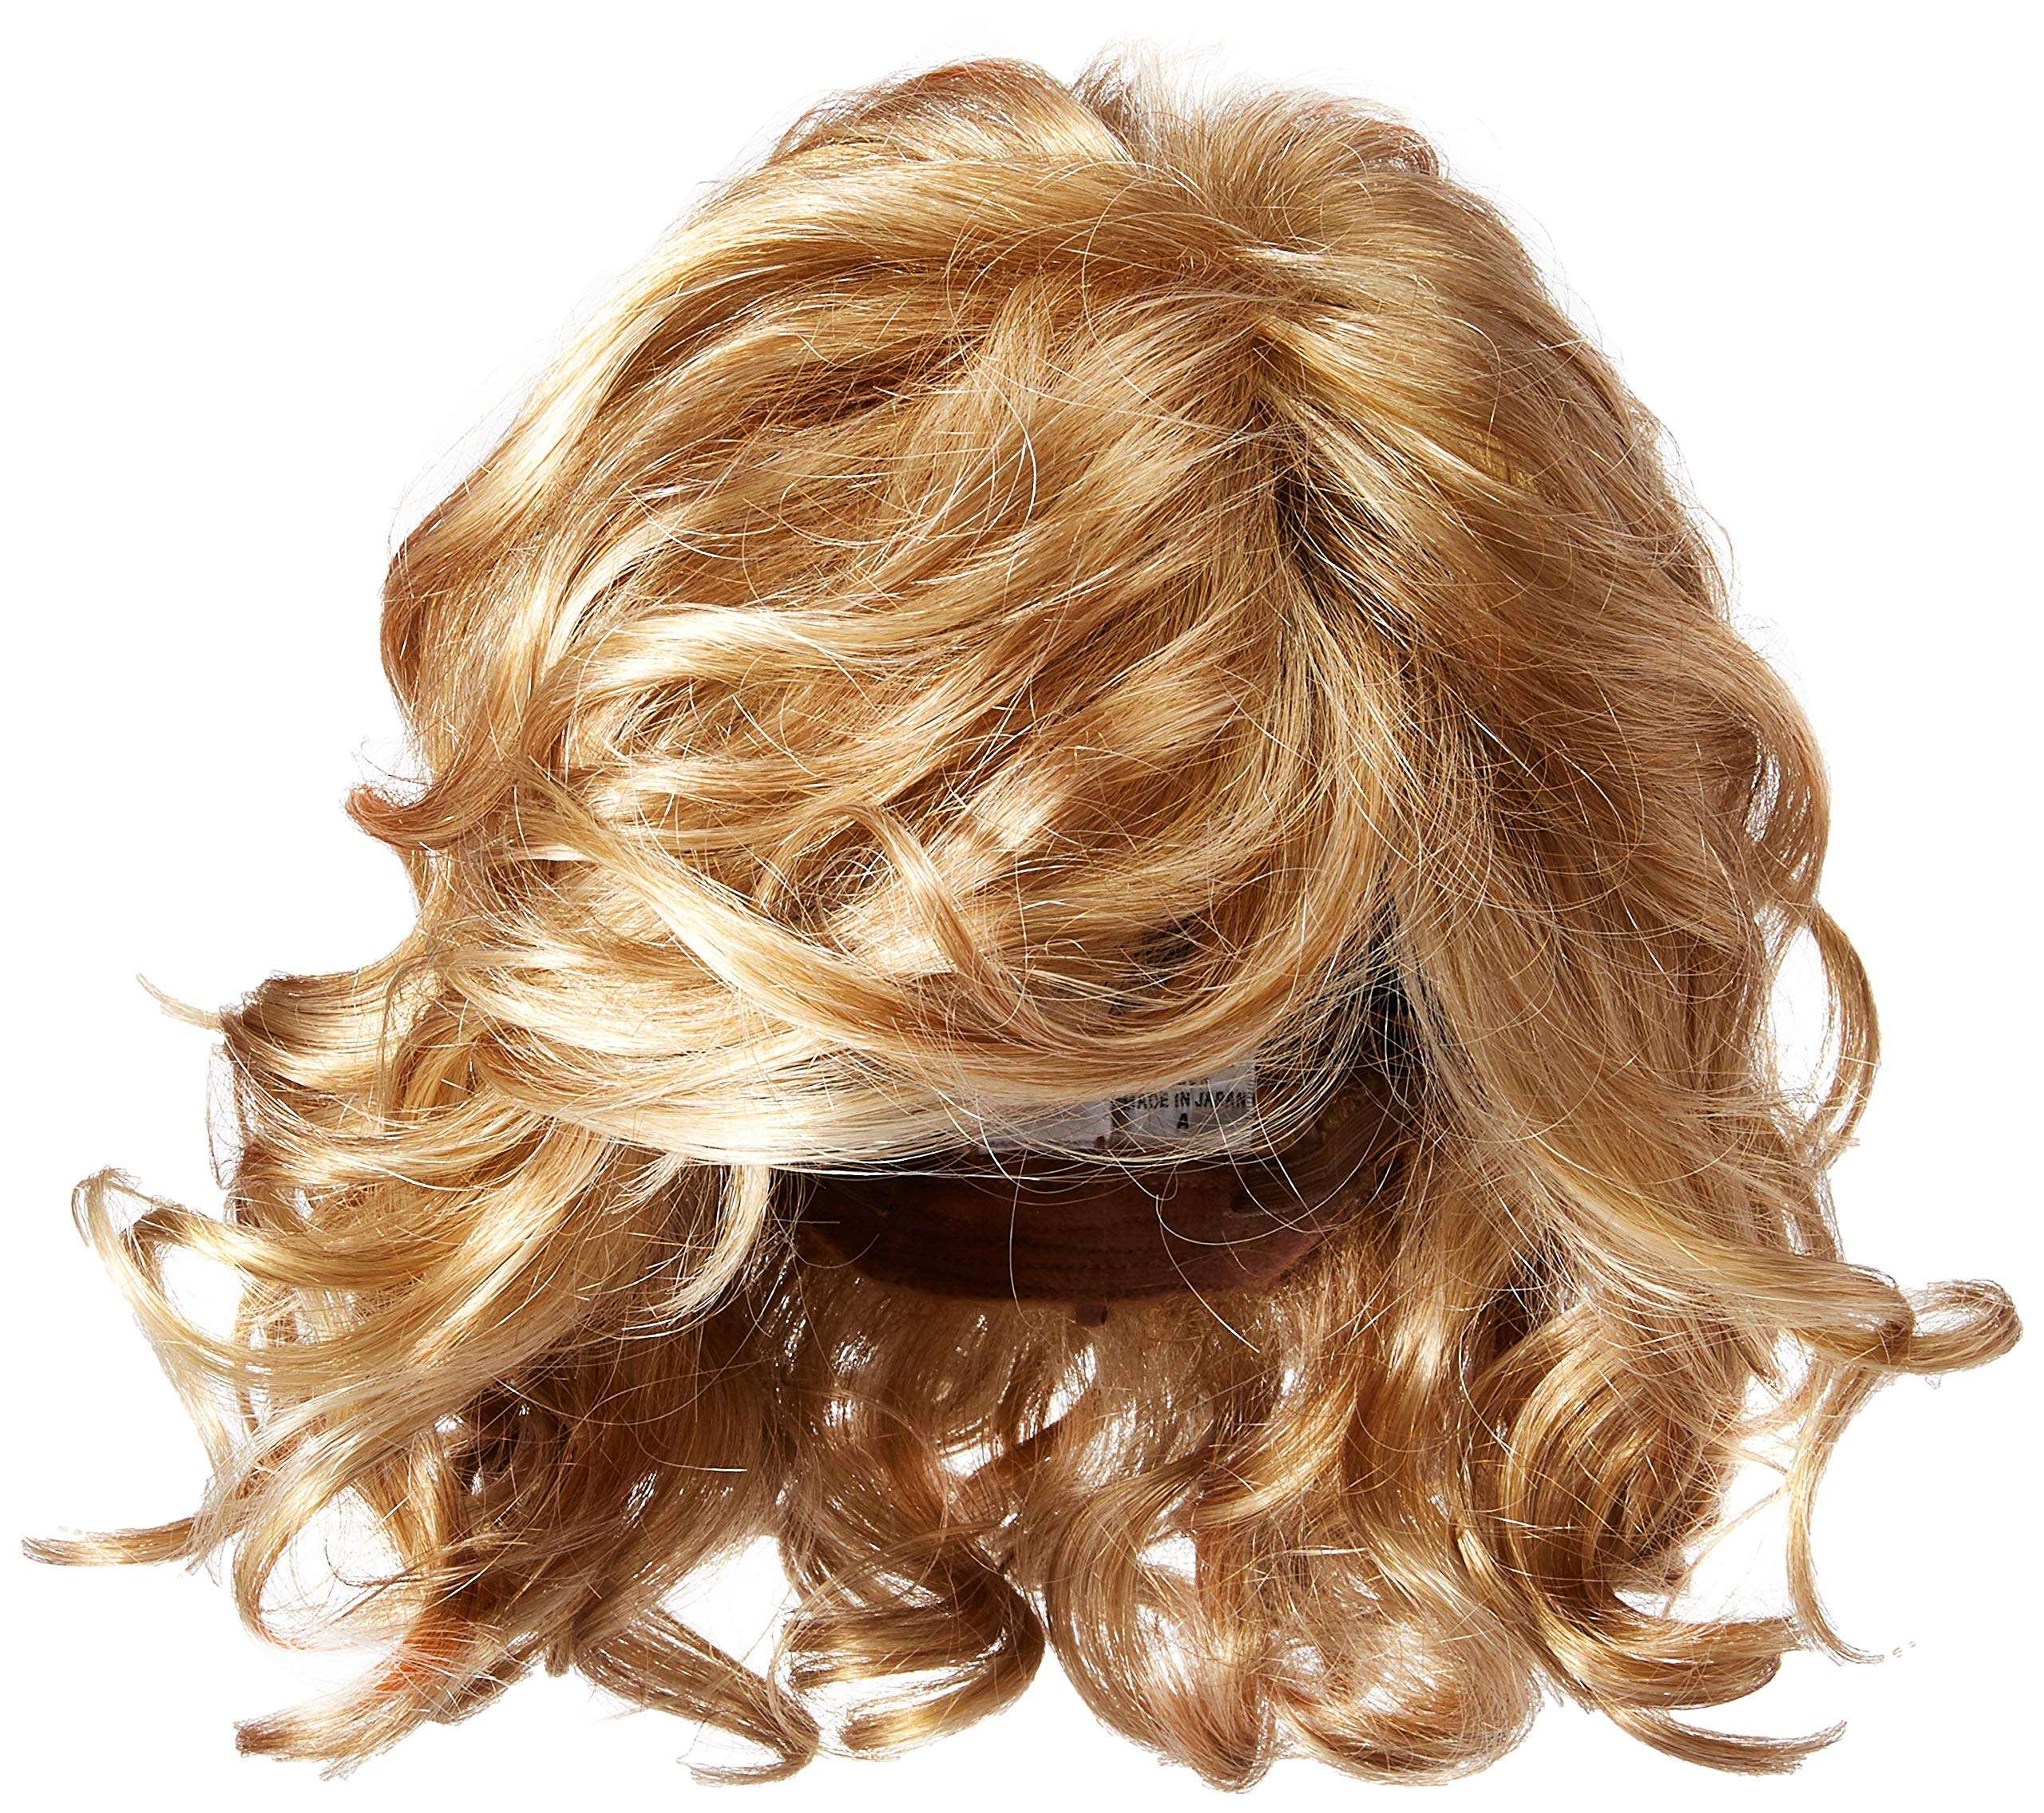 Raquel Welch Brave The Wave With Shoulder Length Modern Scrunched Soft Wavy Chic Hair, R25 Ginger Blonde by Hairuwear by Hair u wear